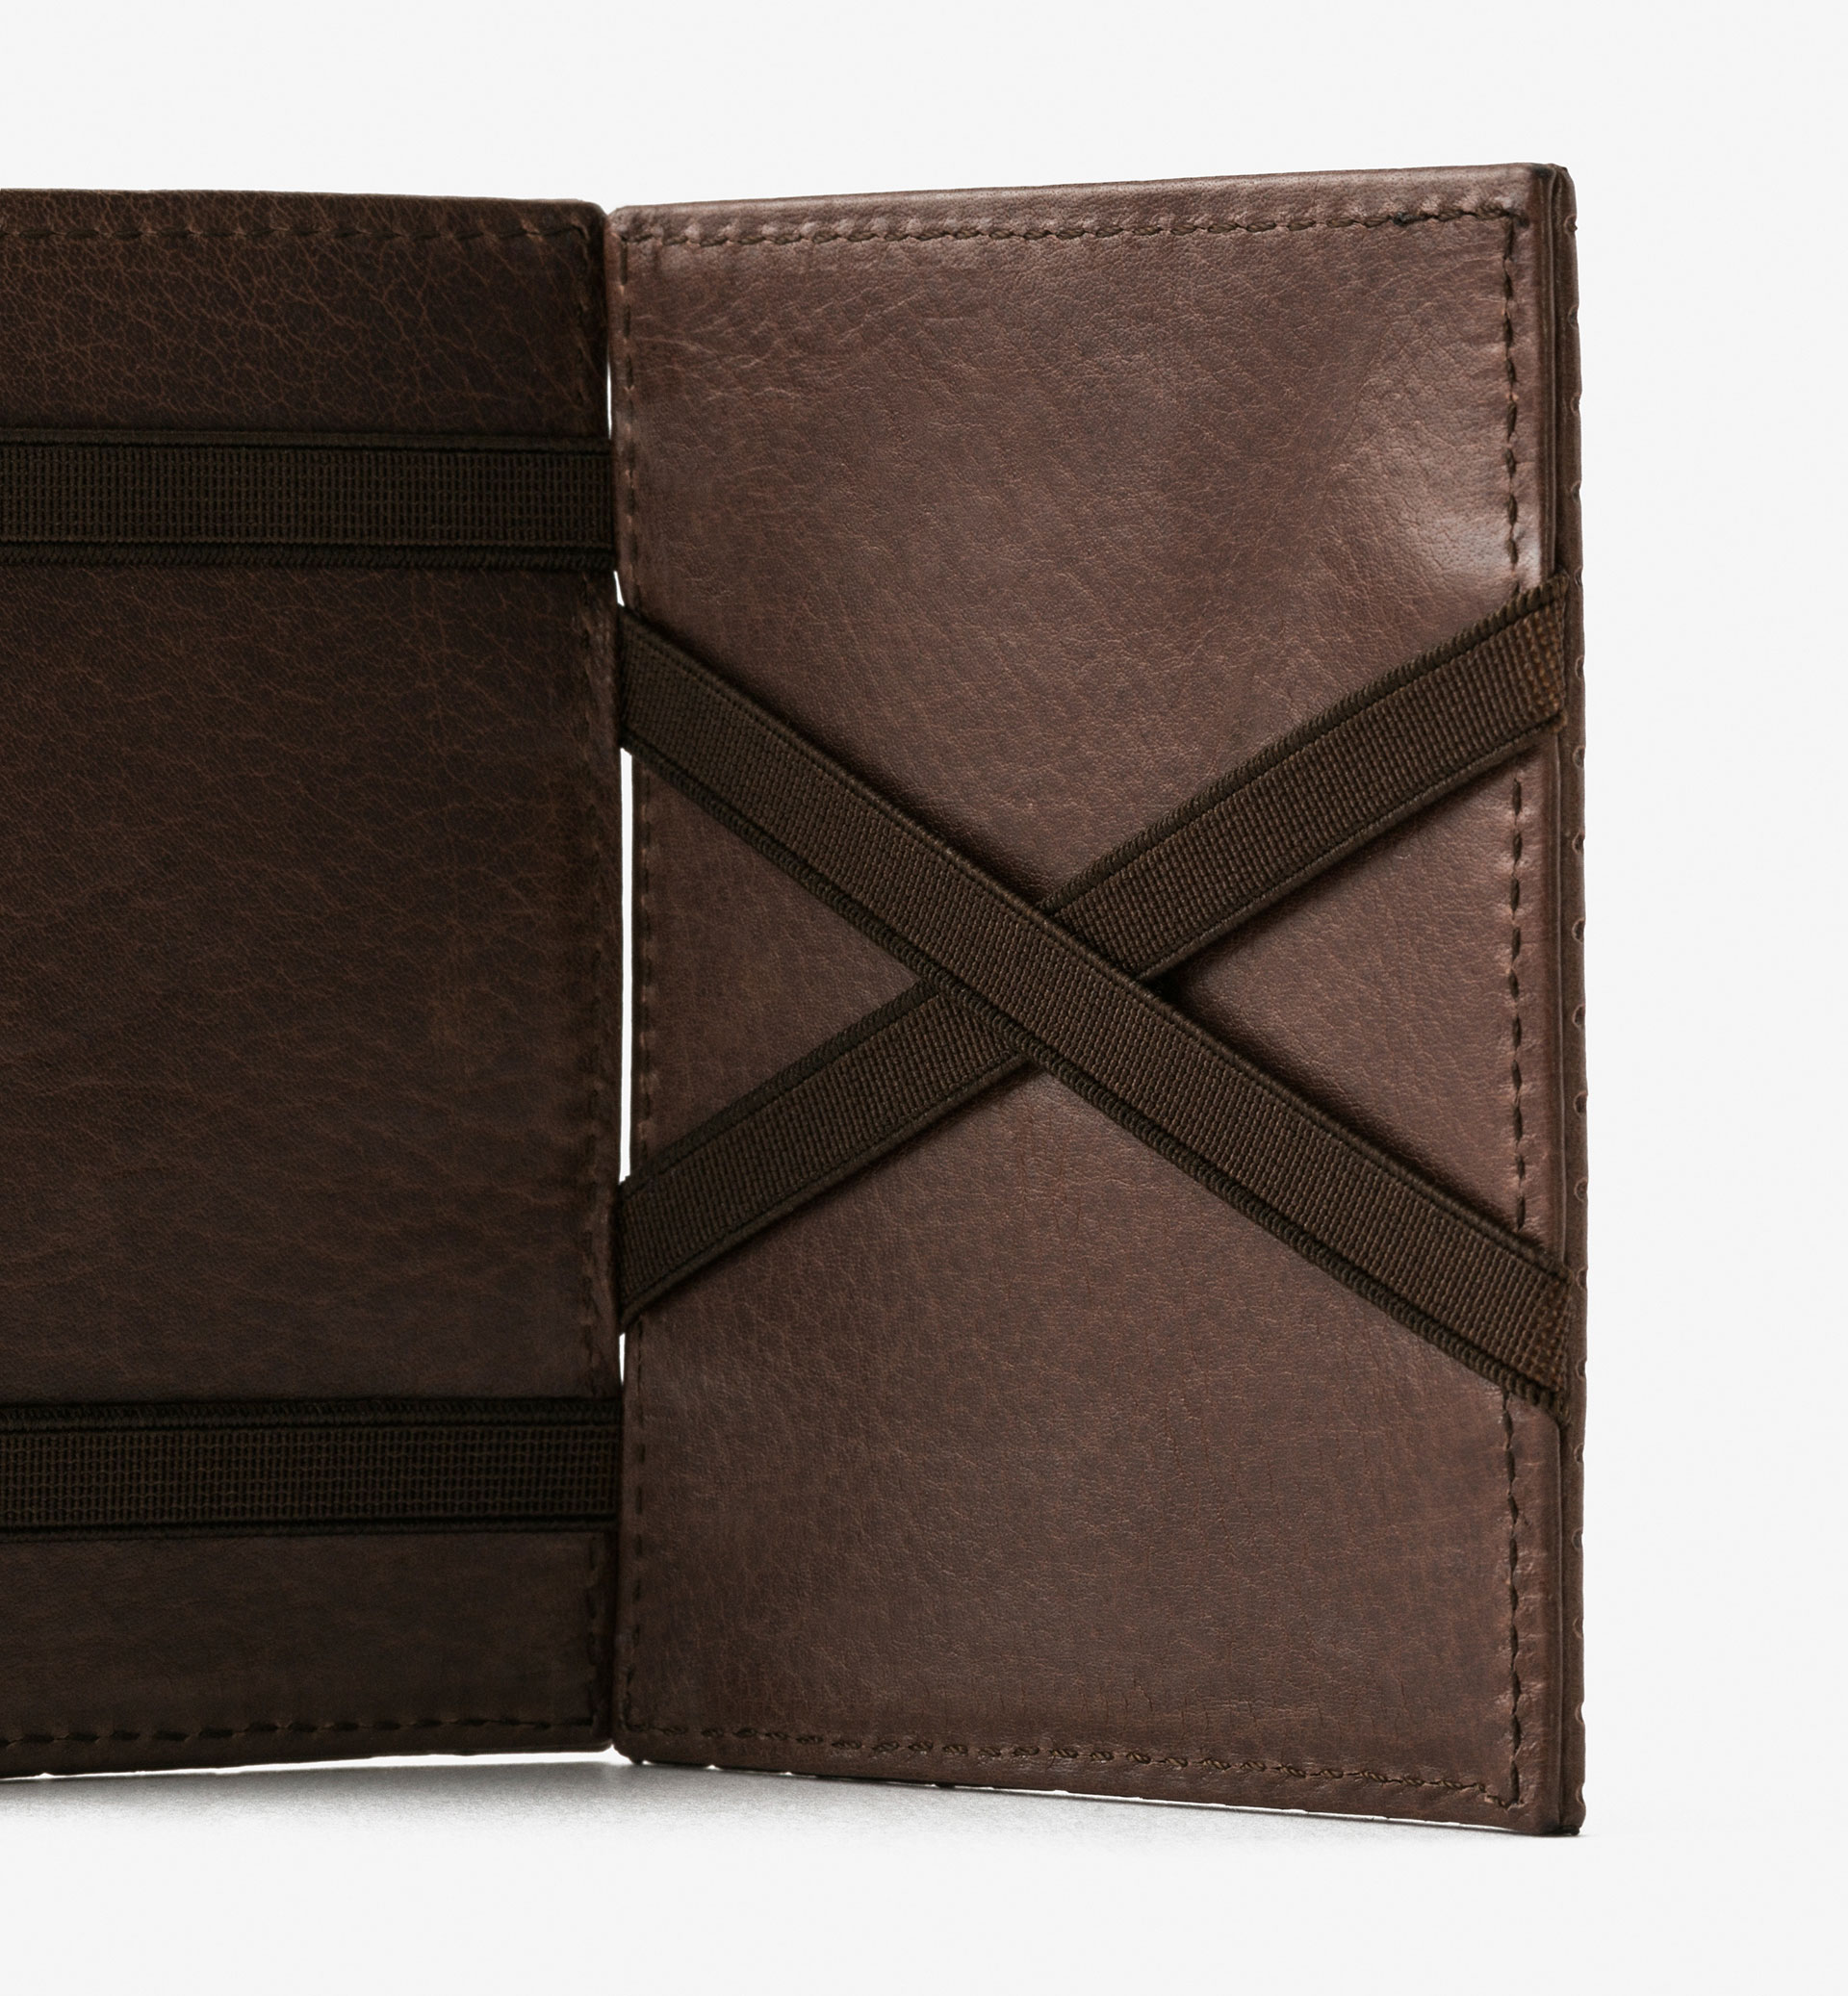 TARGETER MAGIC WALLET PICATS PELL LIMITED EDITION